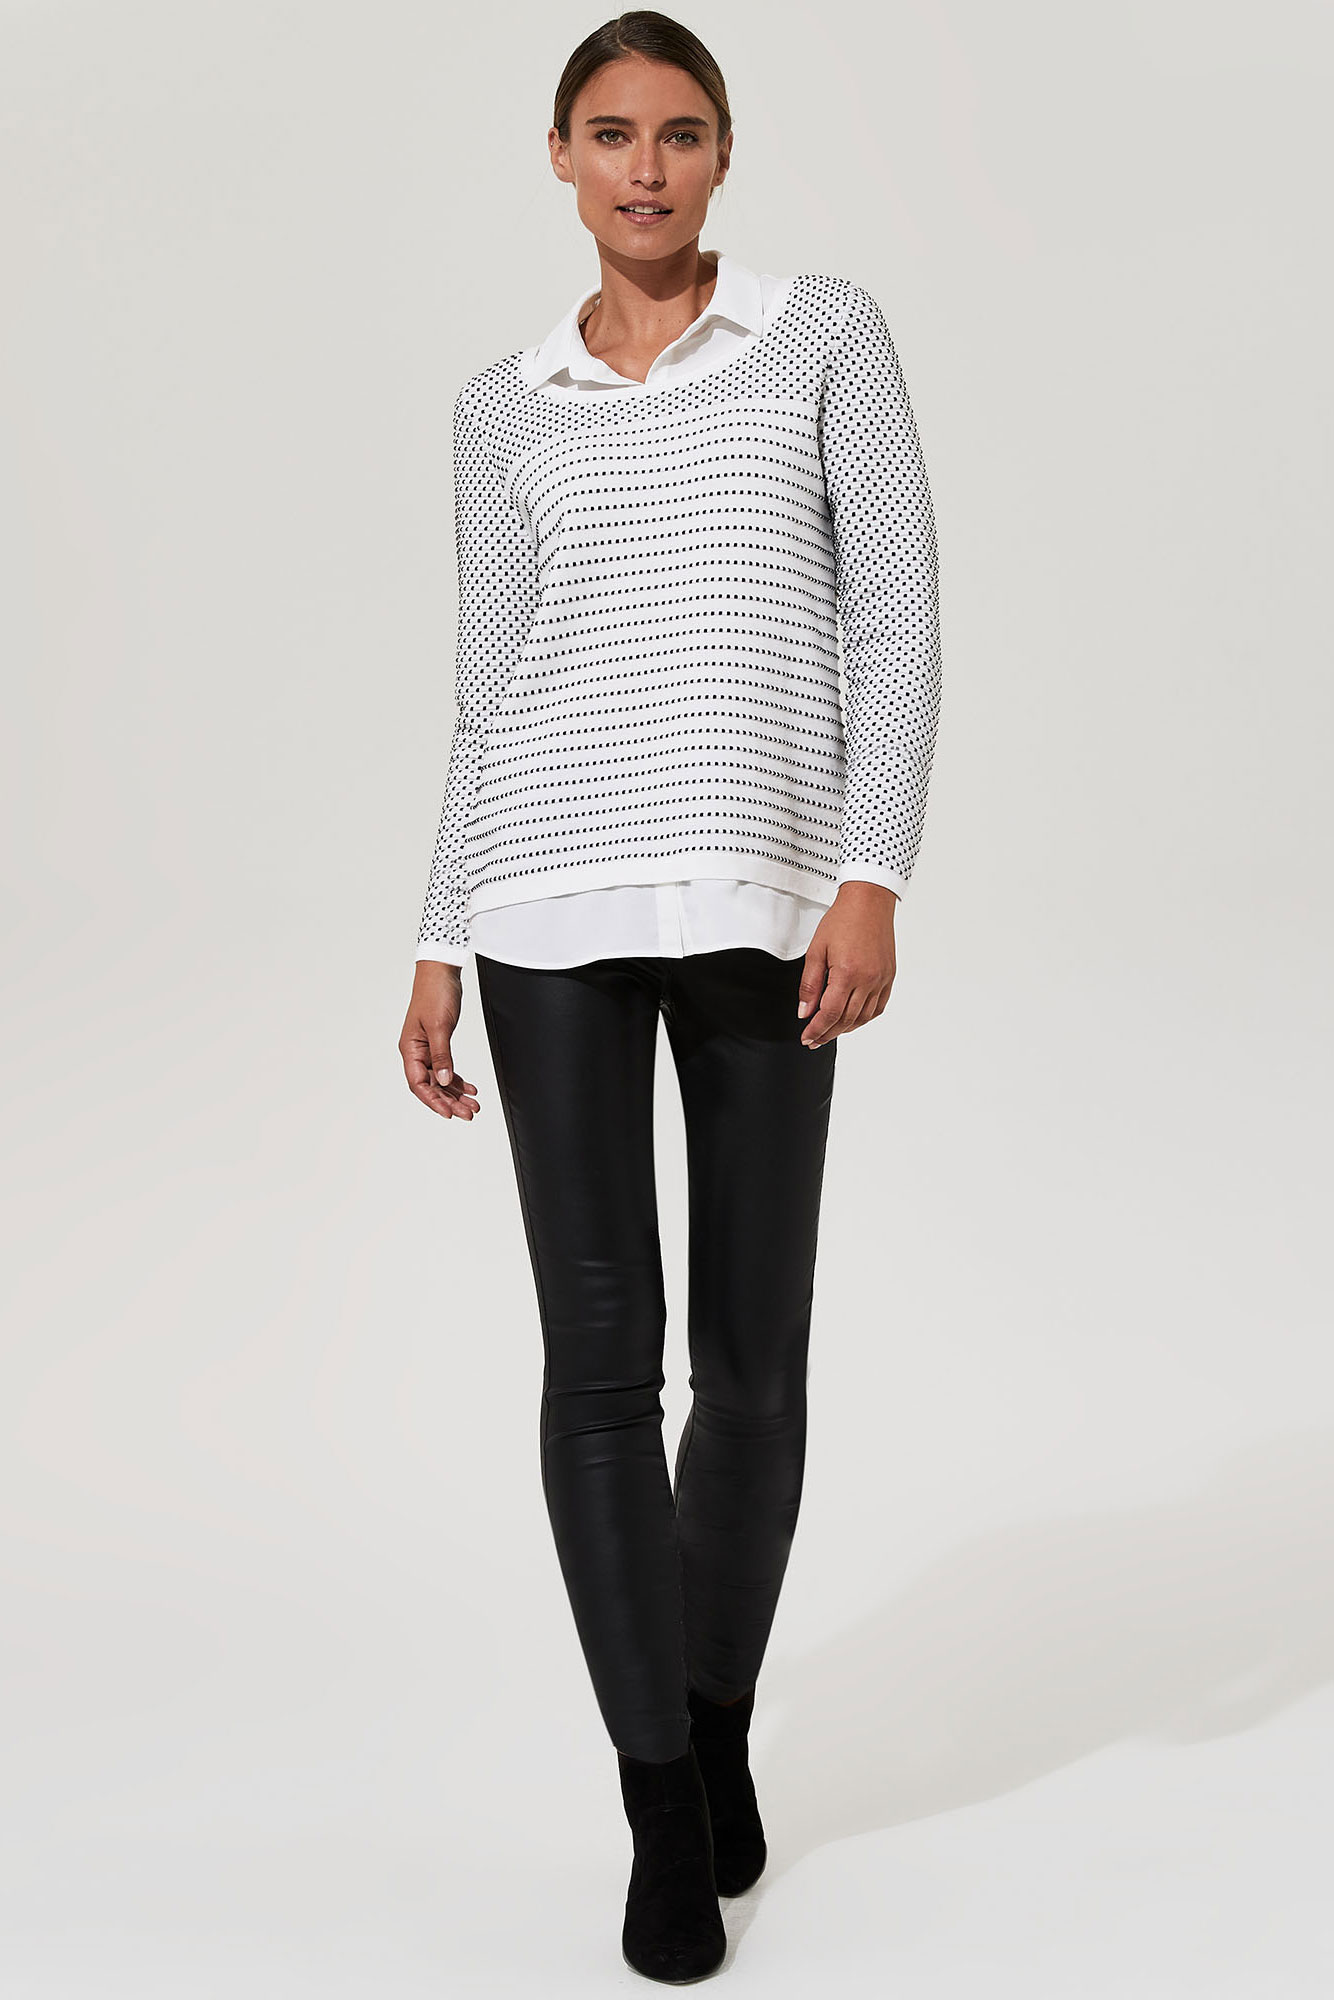 KARL LAGERFELD White Dotted Stripe Shirt Jumper